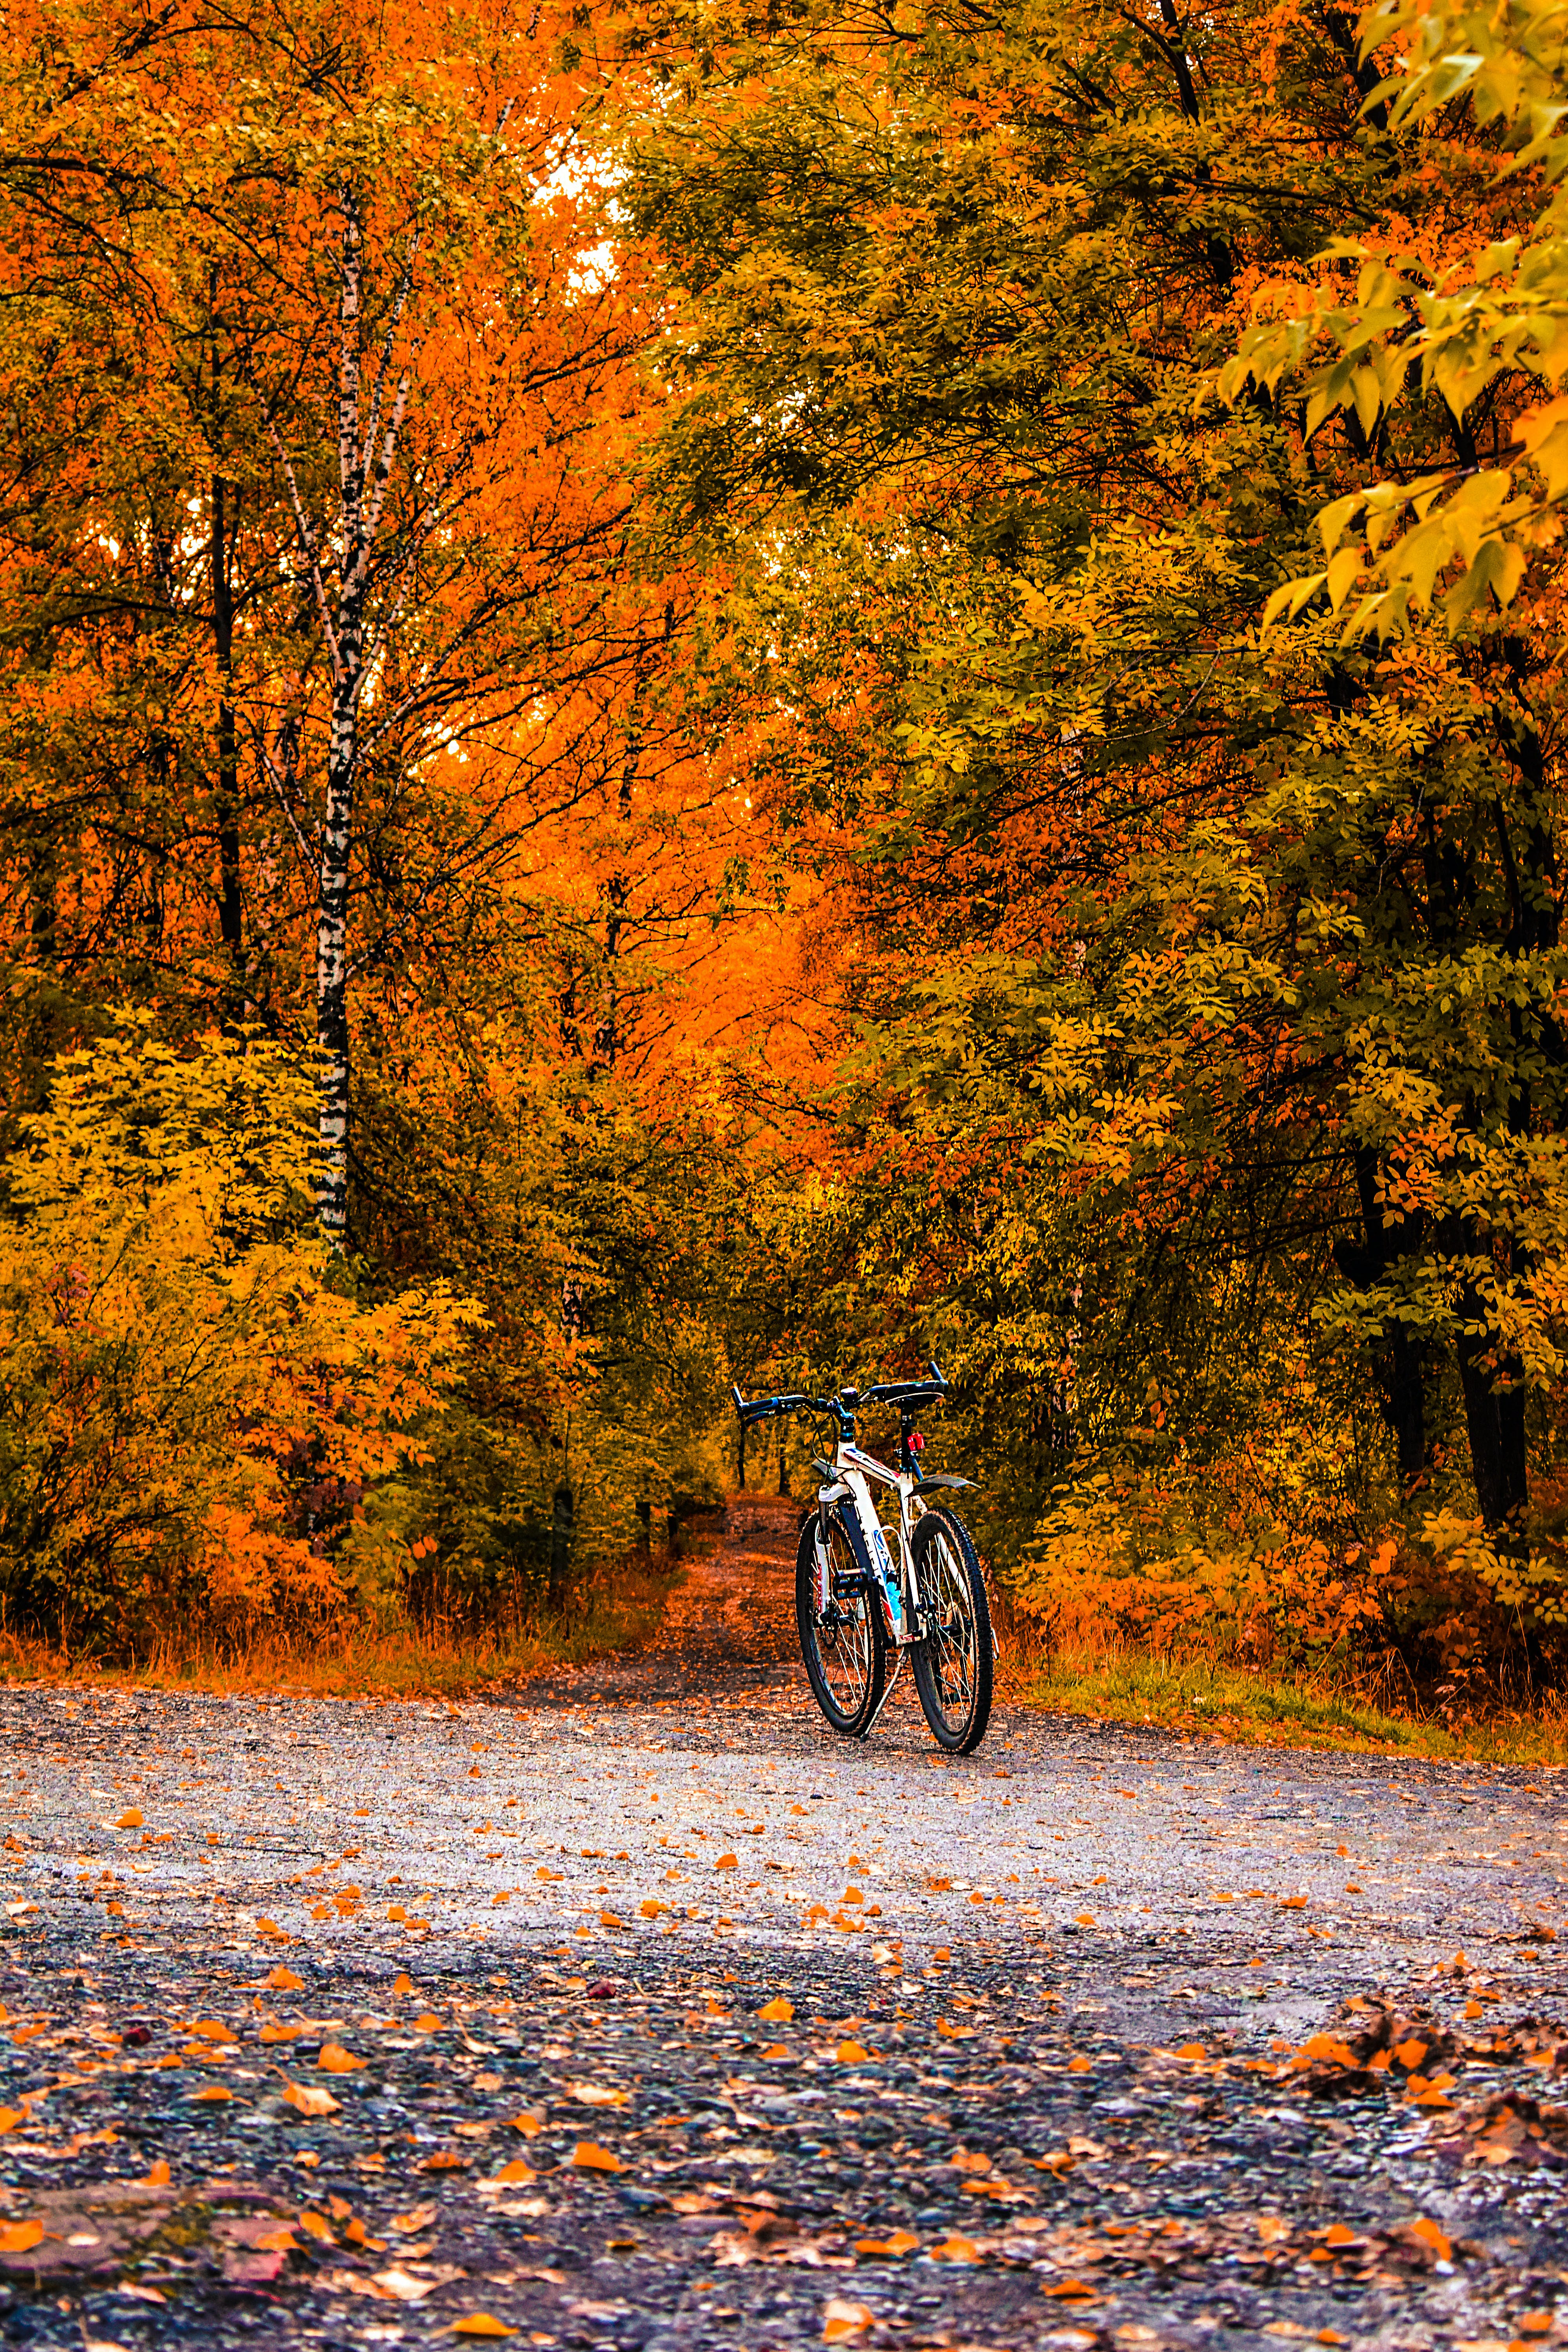 White Bicycle in Between Brown and Green Leafed Trees